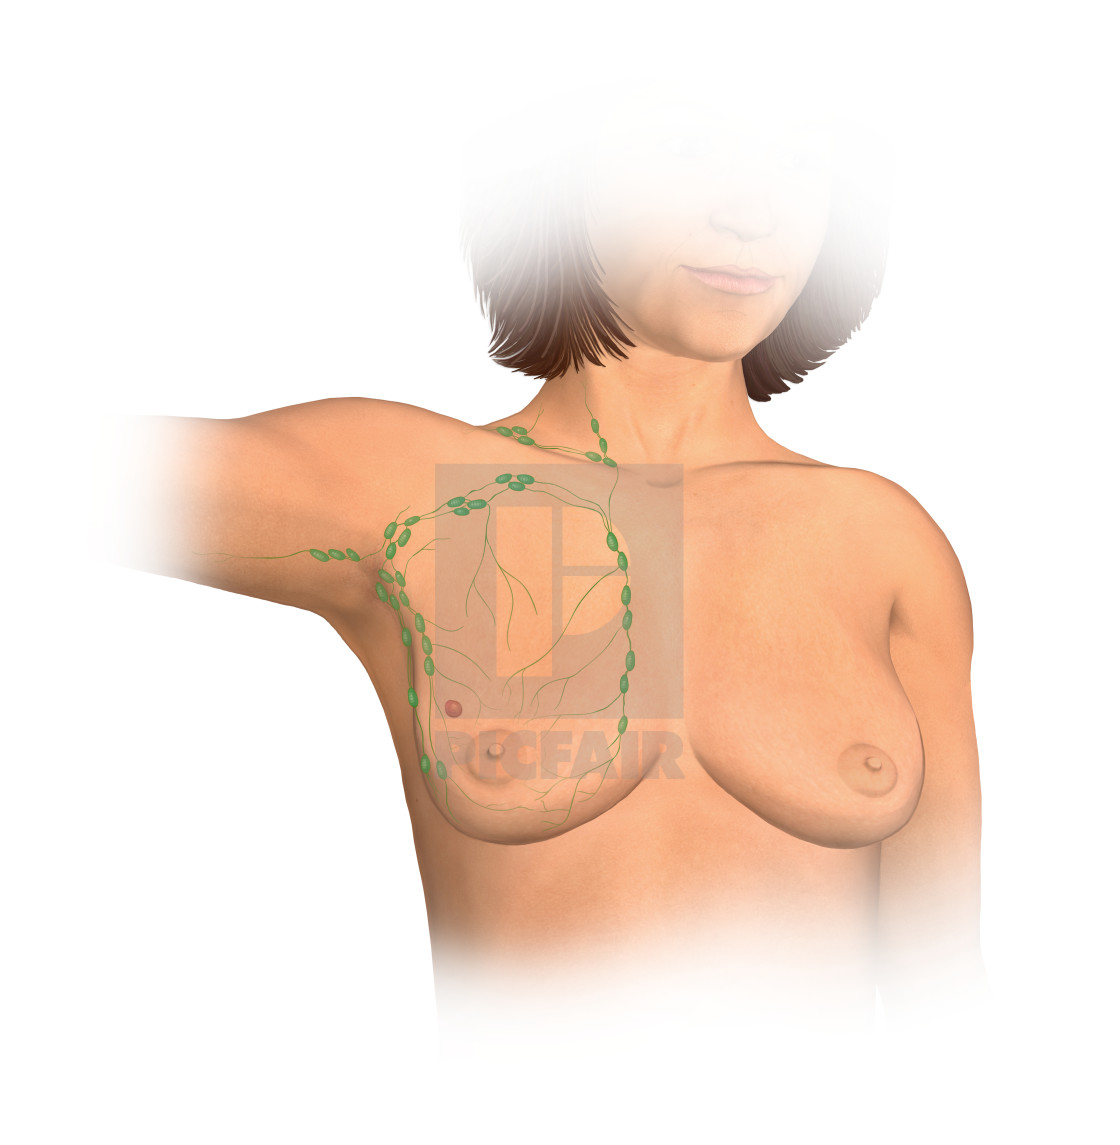 Anterior View Female Anatomy Showing Breast Tissue With A Tumor